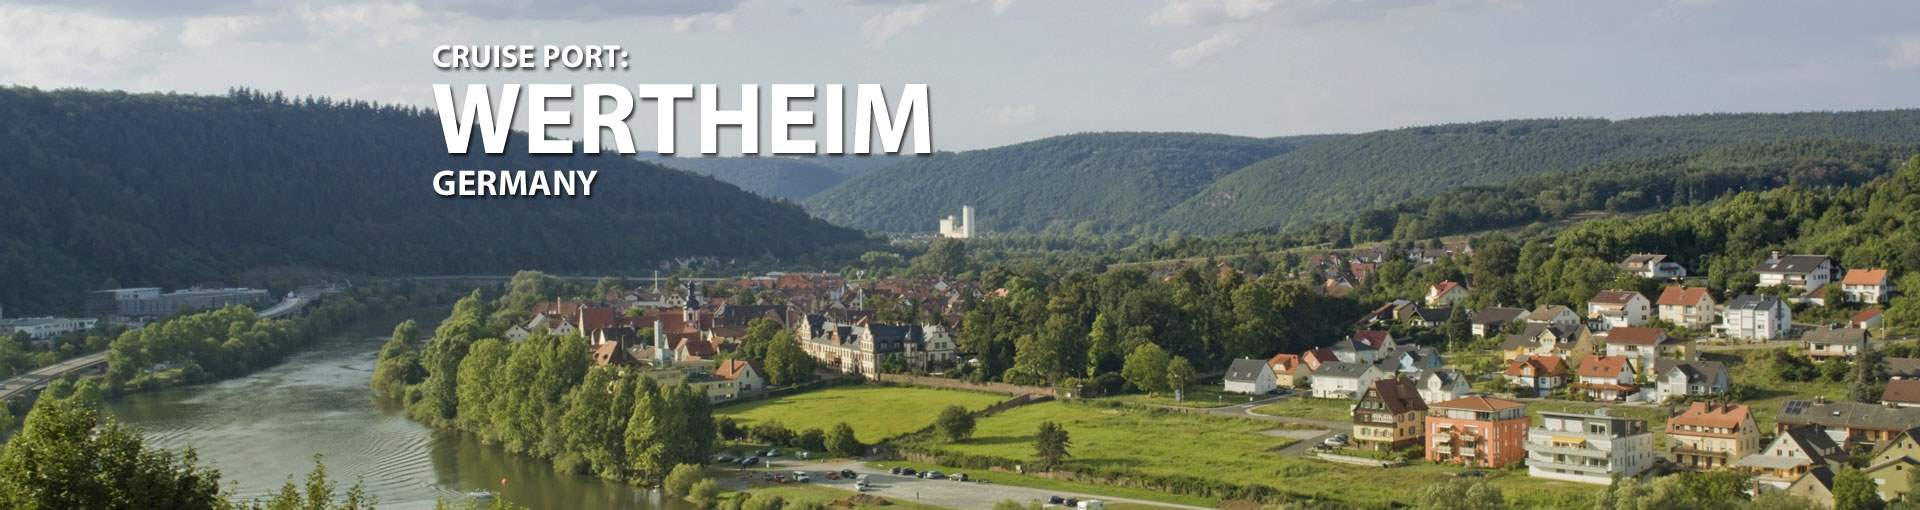 Cruises to Wertheim, Germany